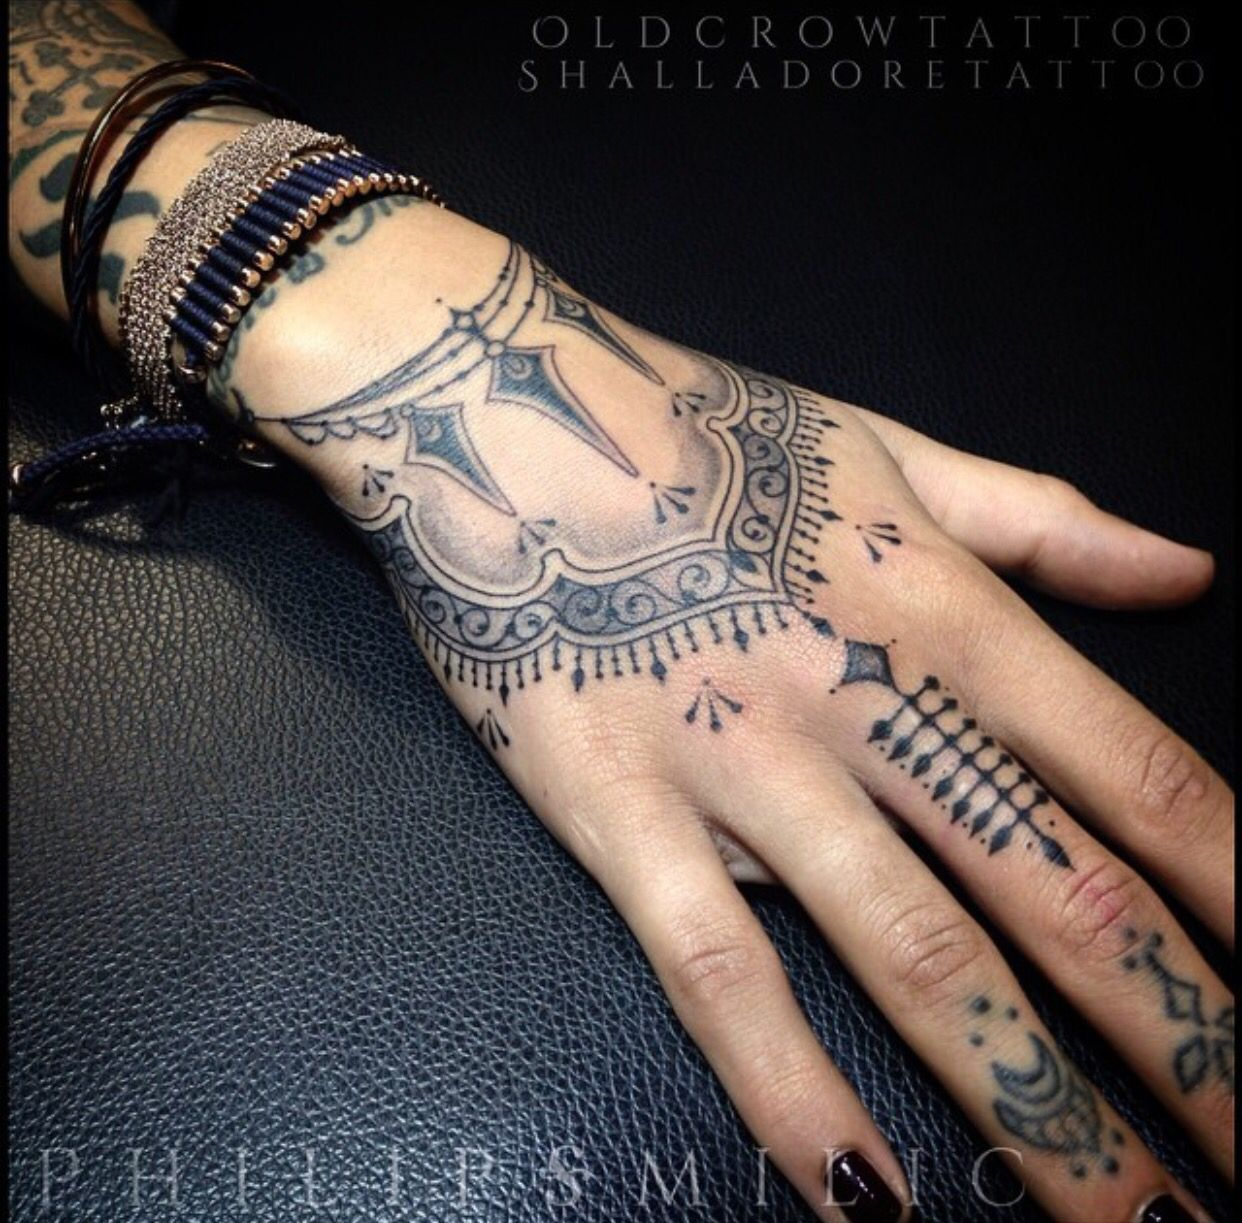 Old Crow Tattoo Mendhi Design Hand Tattoo Love The Line Work And It